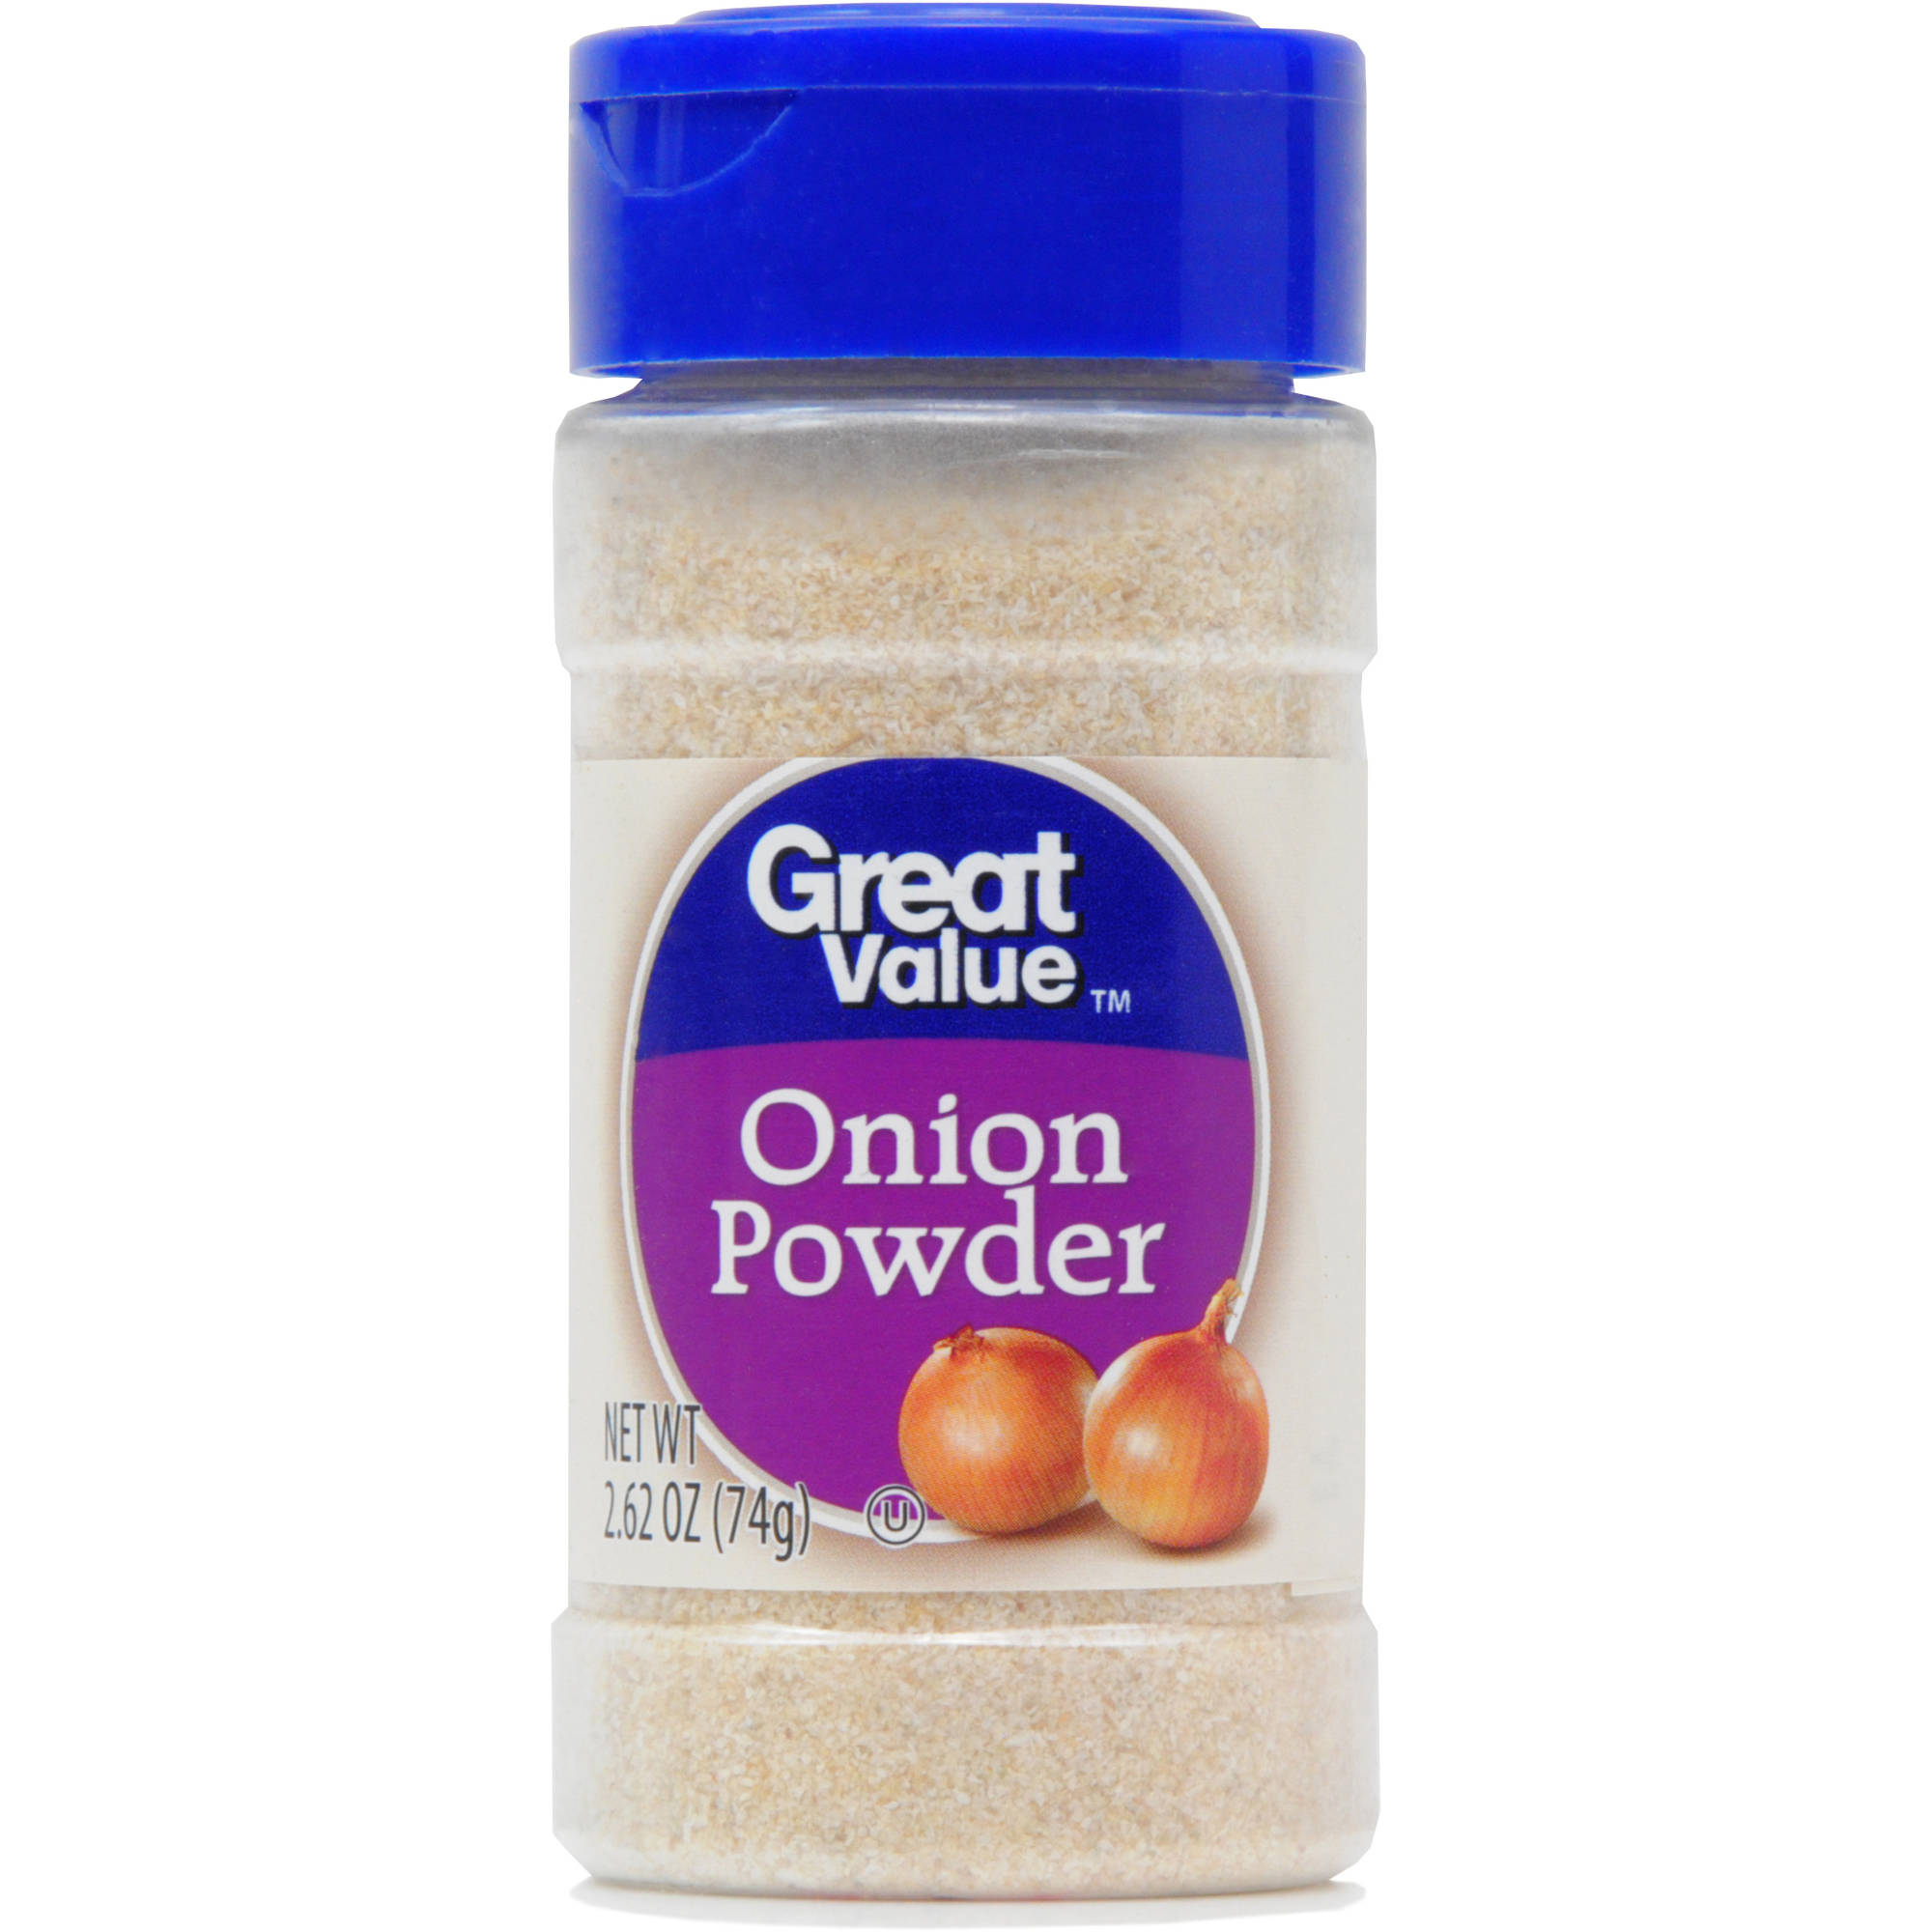 Great Value: Onion Powder Seasoning, 2.62 Oz